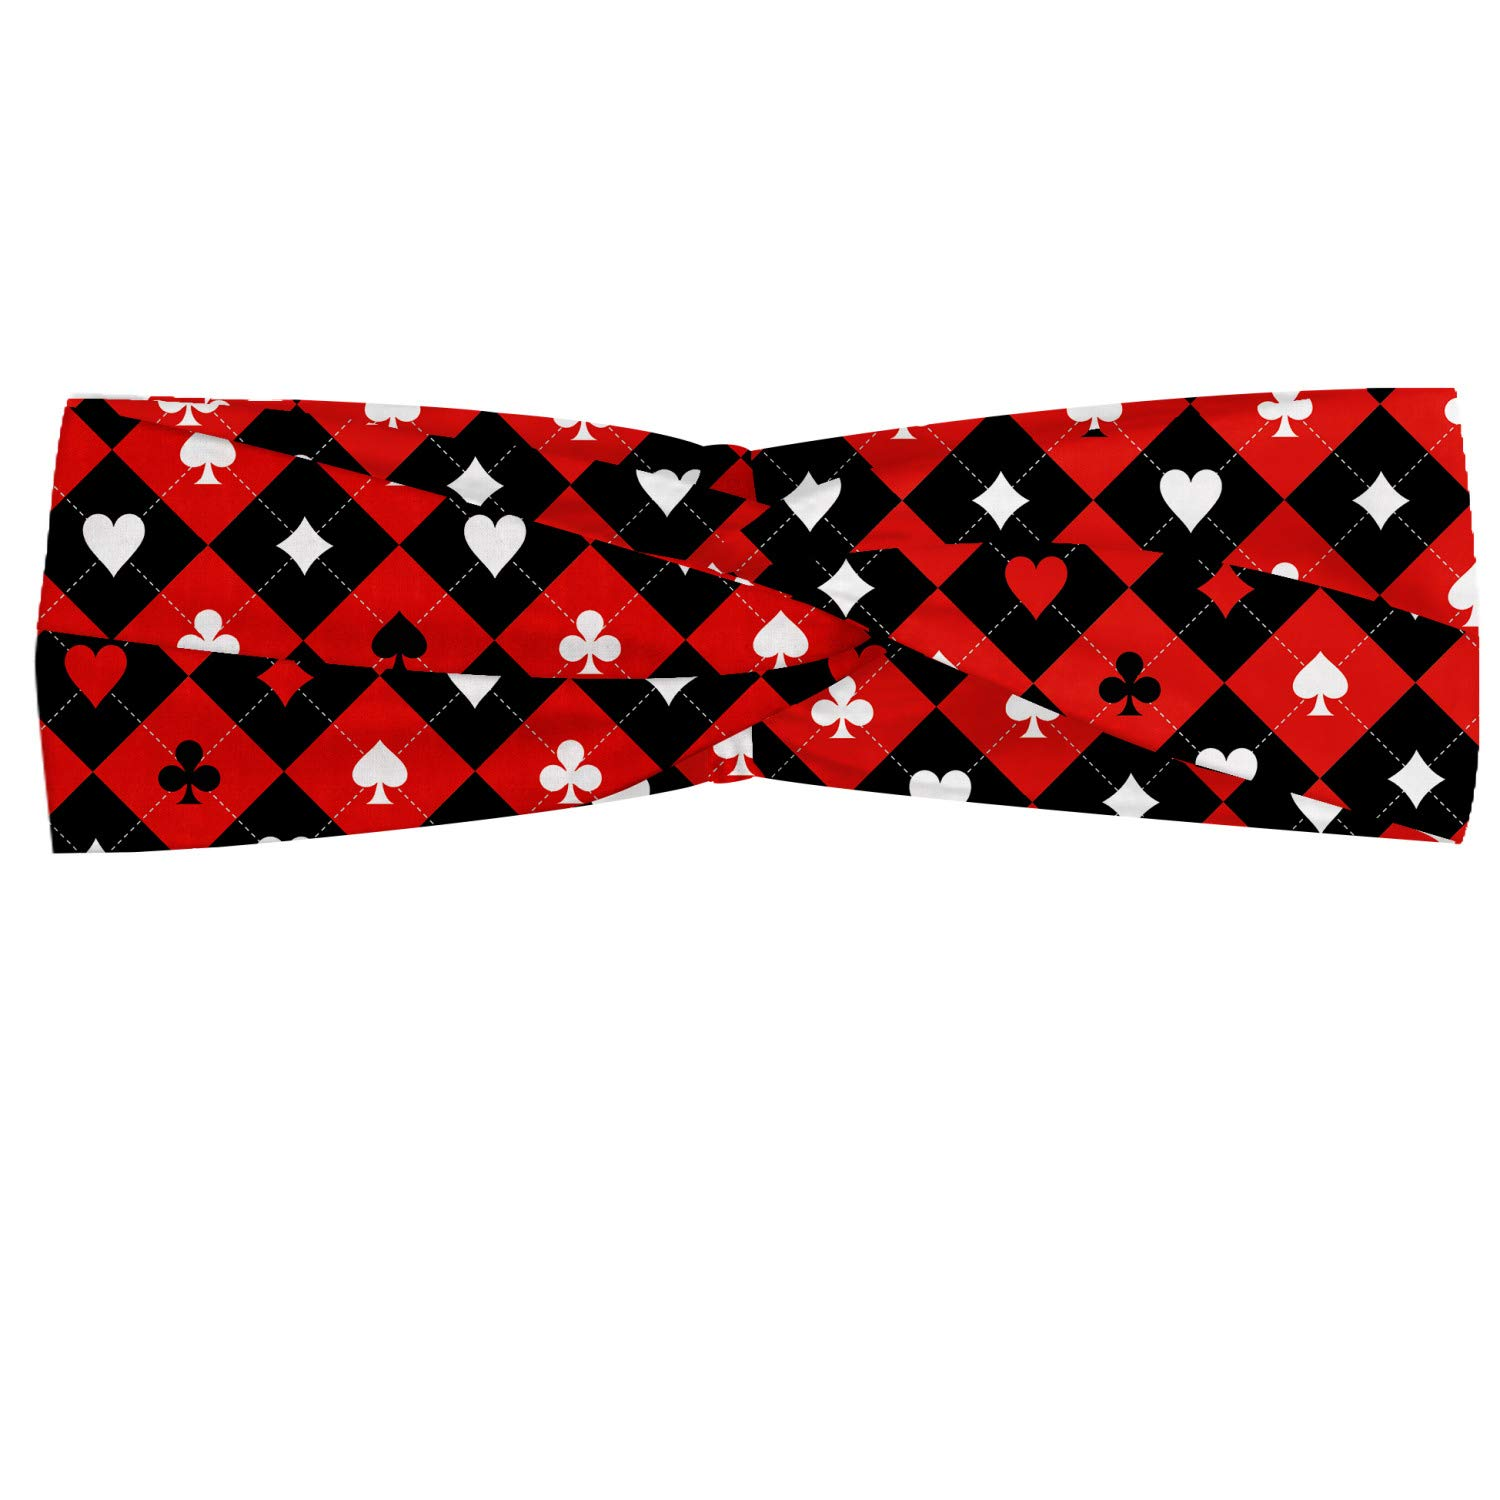 Lunarable Poker Tournament Headband, Card Suit Chess Board Classic Checkered Diamond Pattern Spade, Elastic and Soft Women's Bandana for Sports and Everyday Use, Red Black White